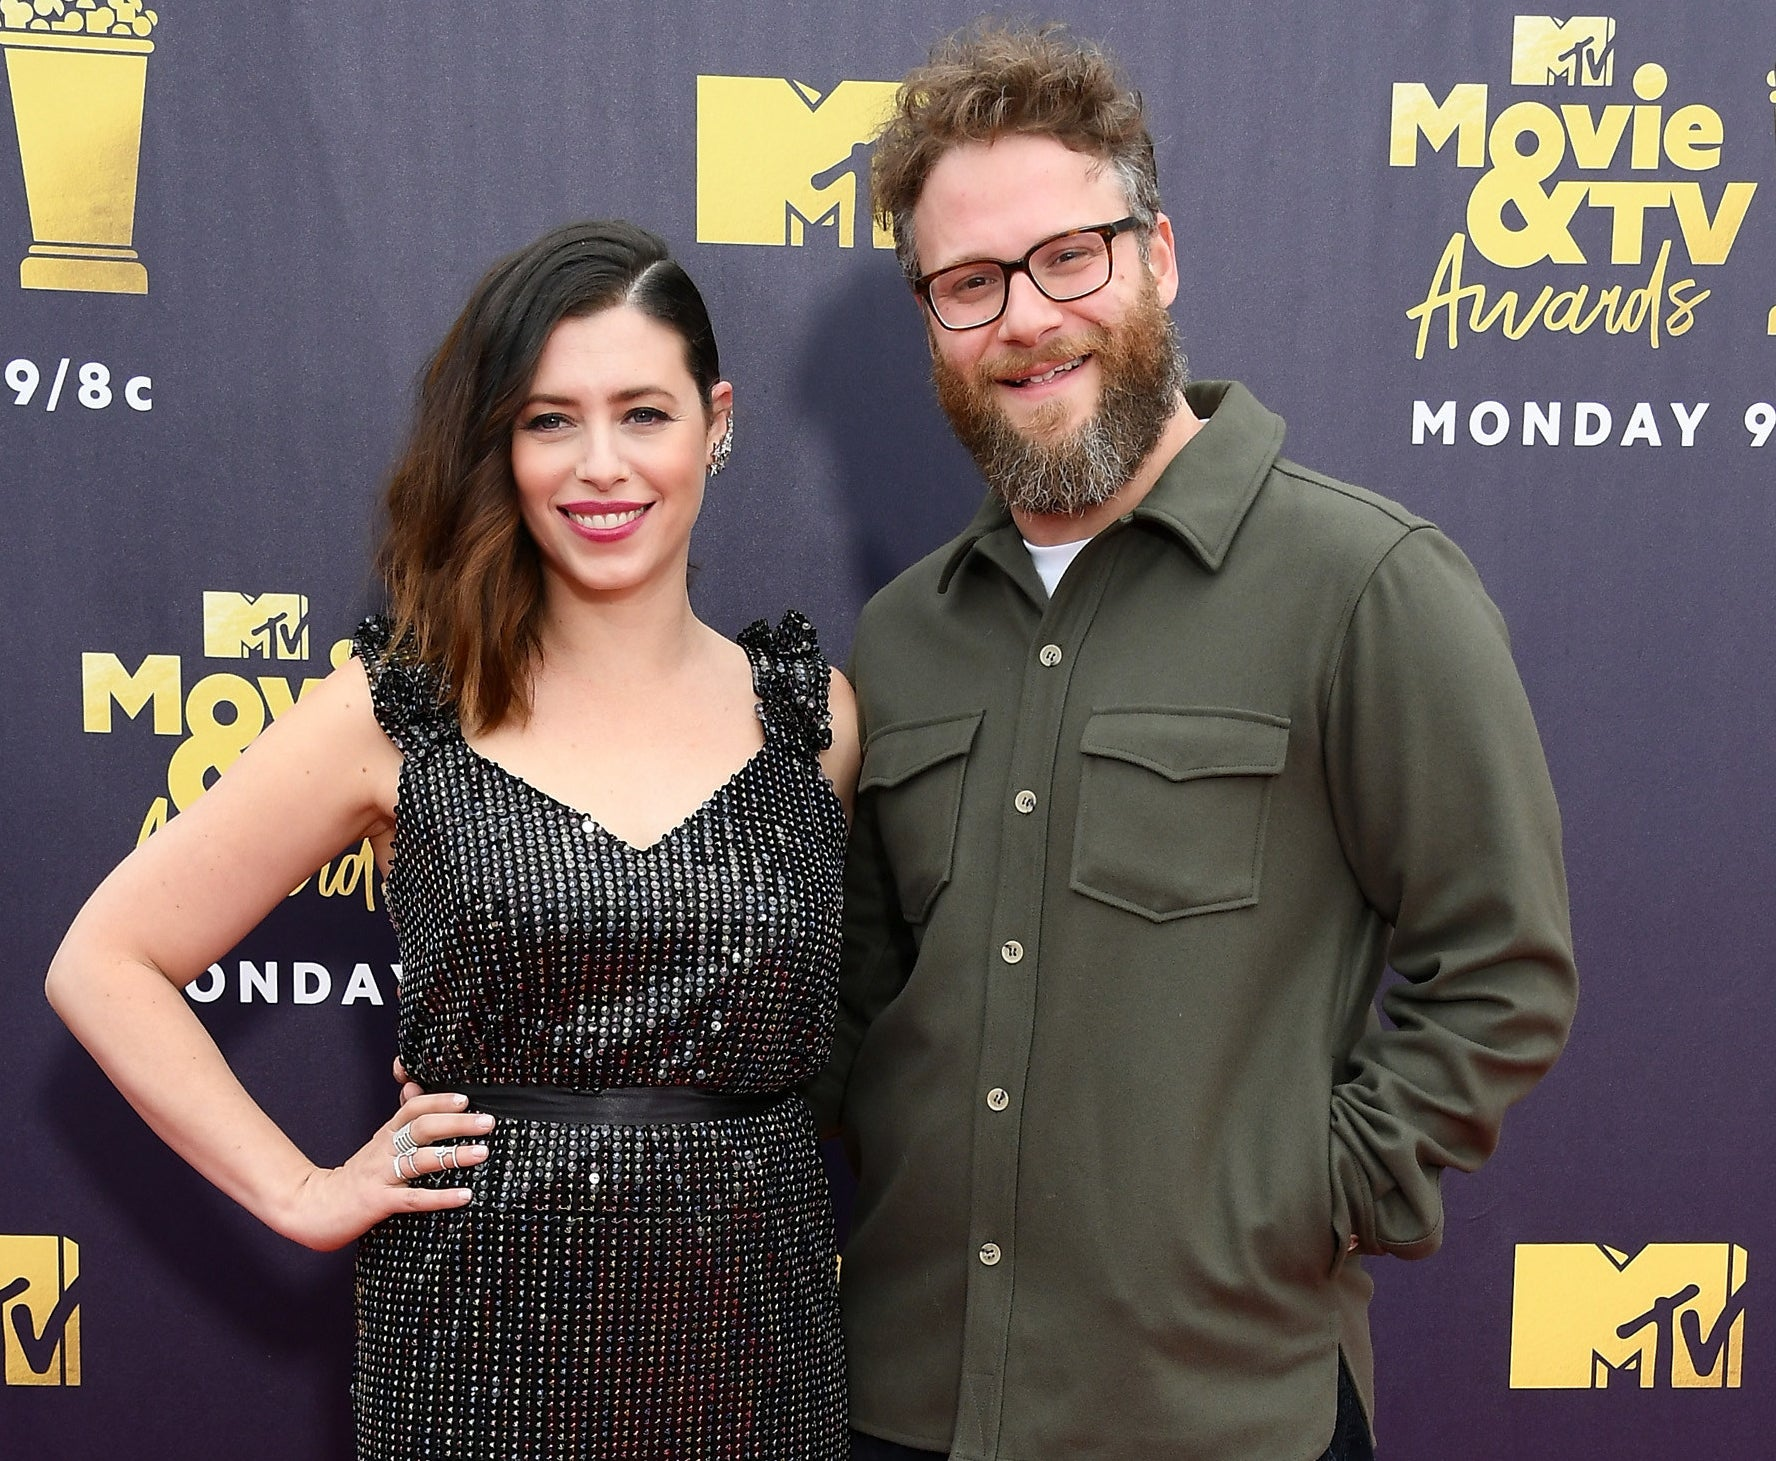 Seth and Lauren attend an awards show